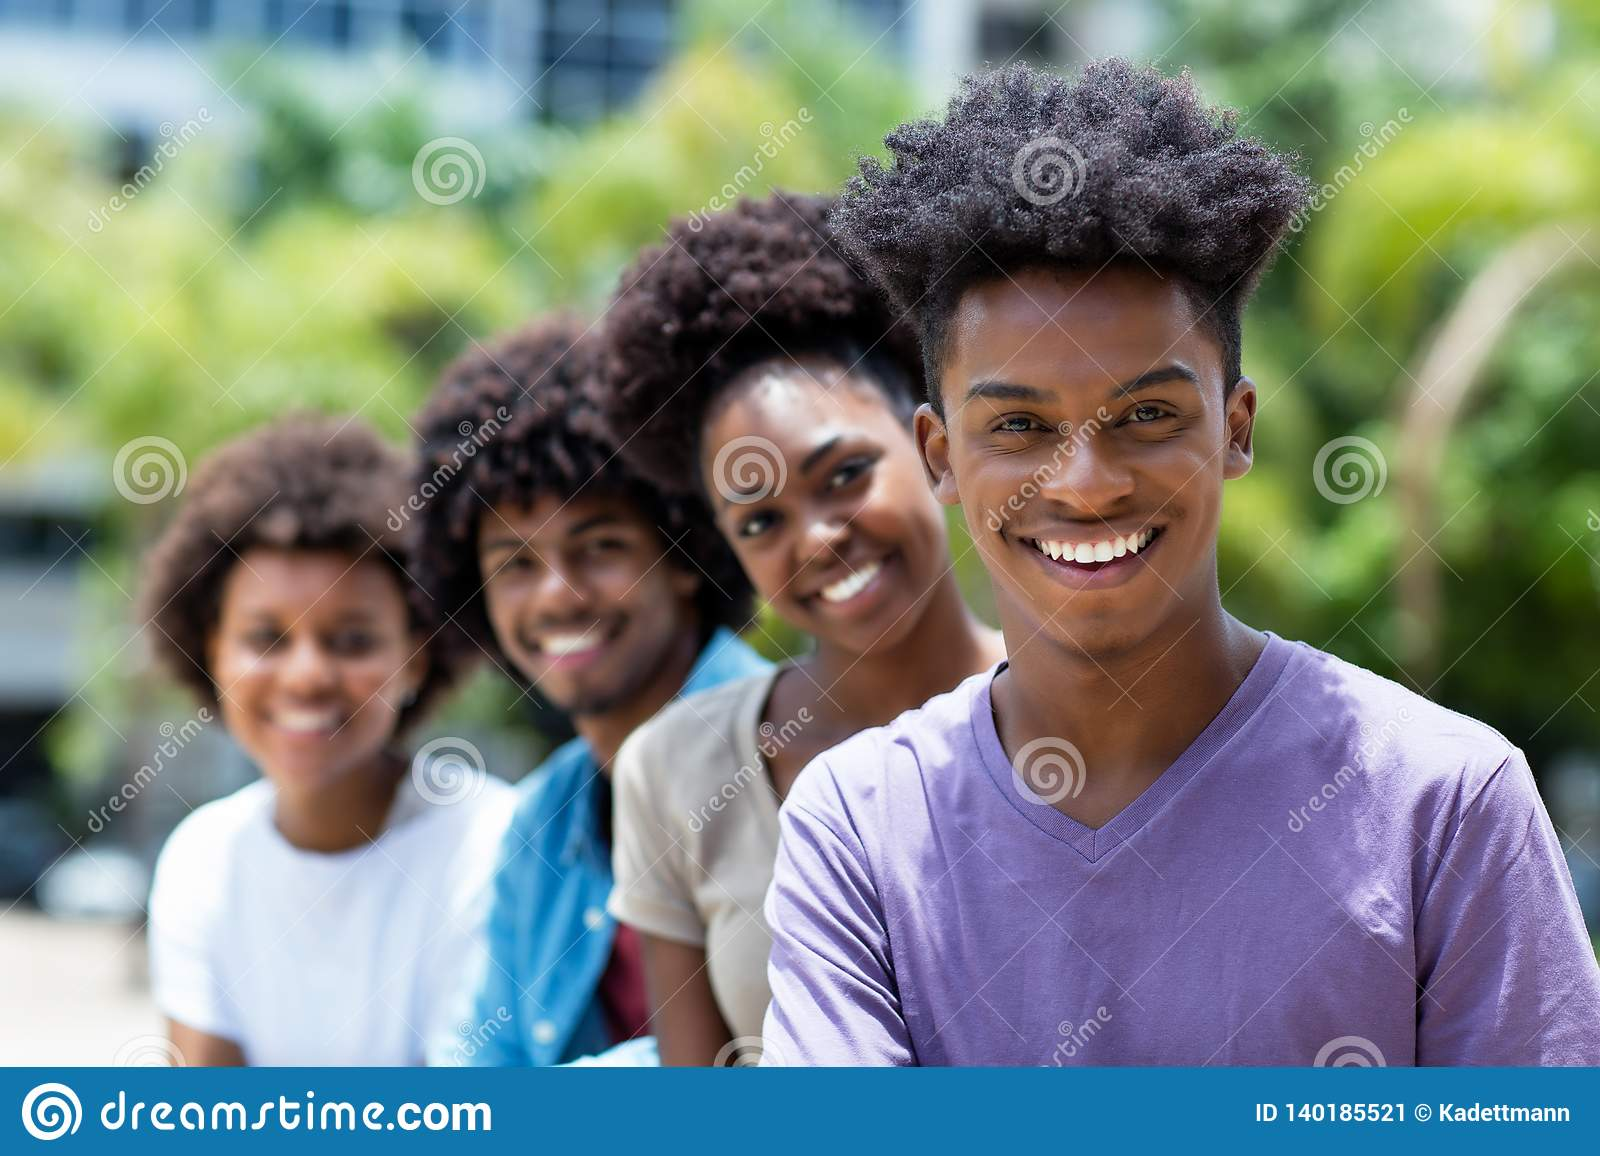 Laughing african american man with group of young adults in line